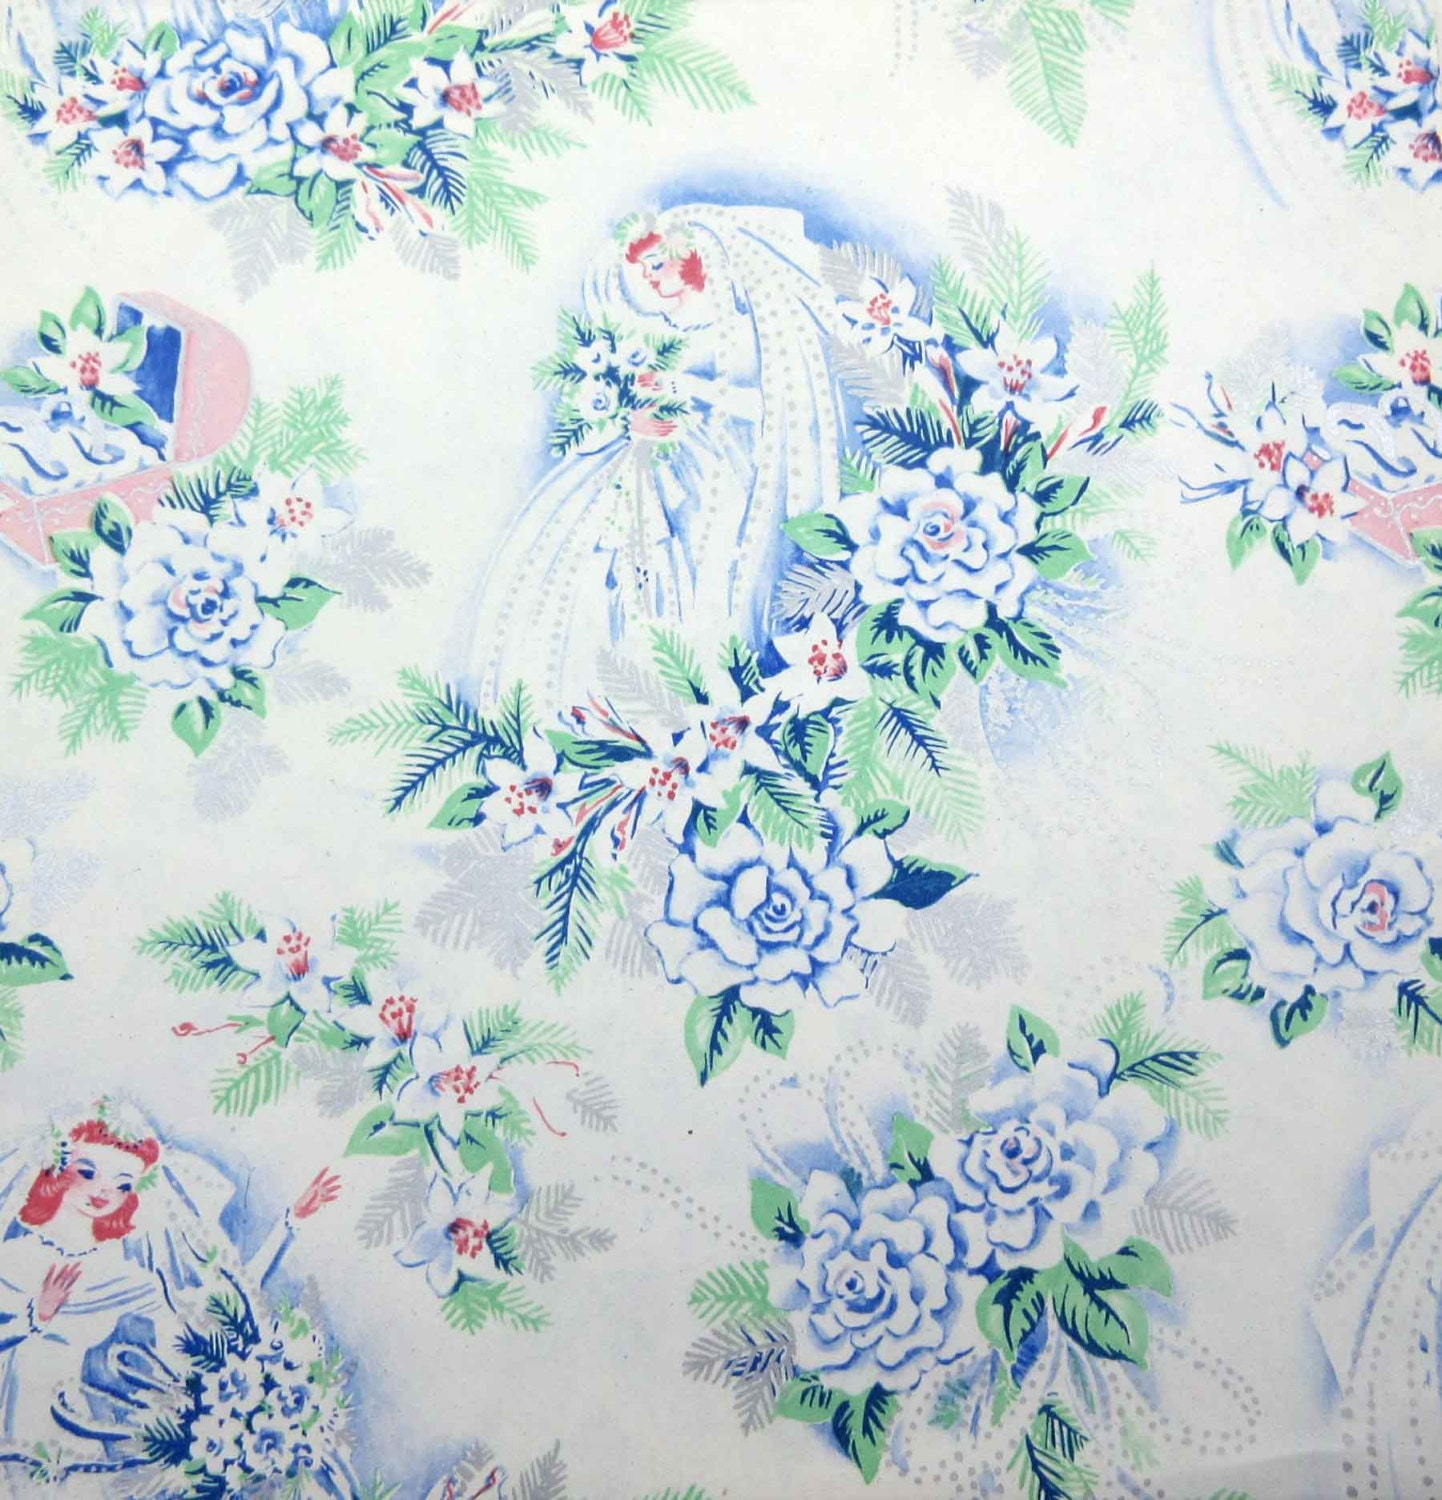 Wedding Gift Paper: Vintage Wedding Or Bridal Shower Wrapping Paper Or Gift